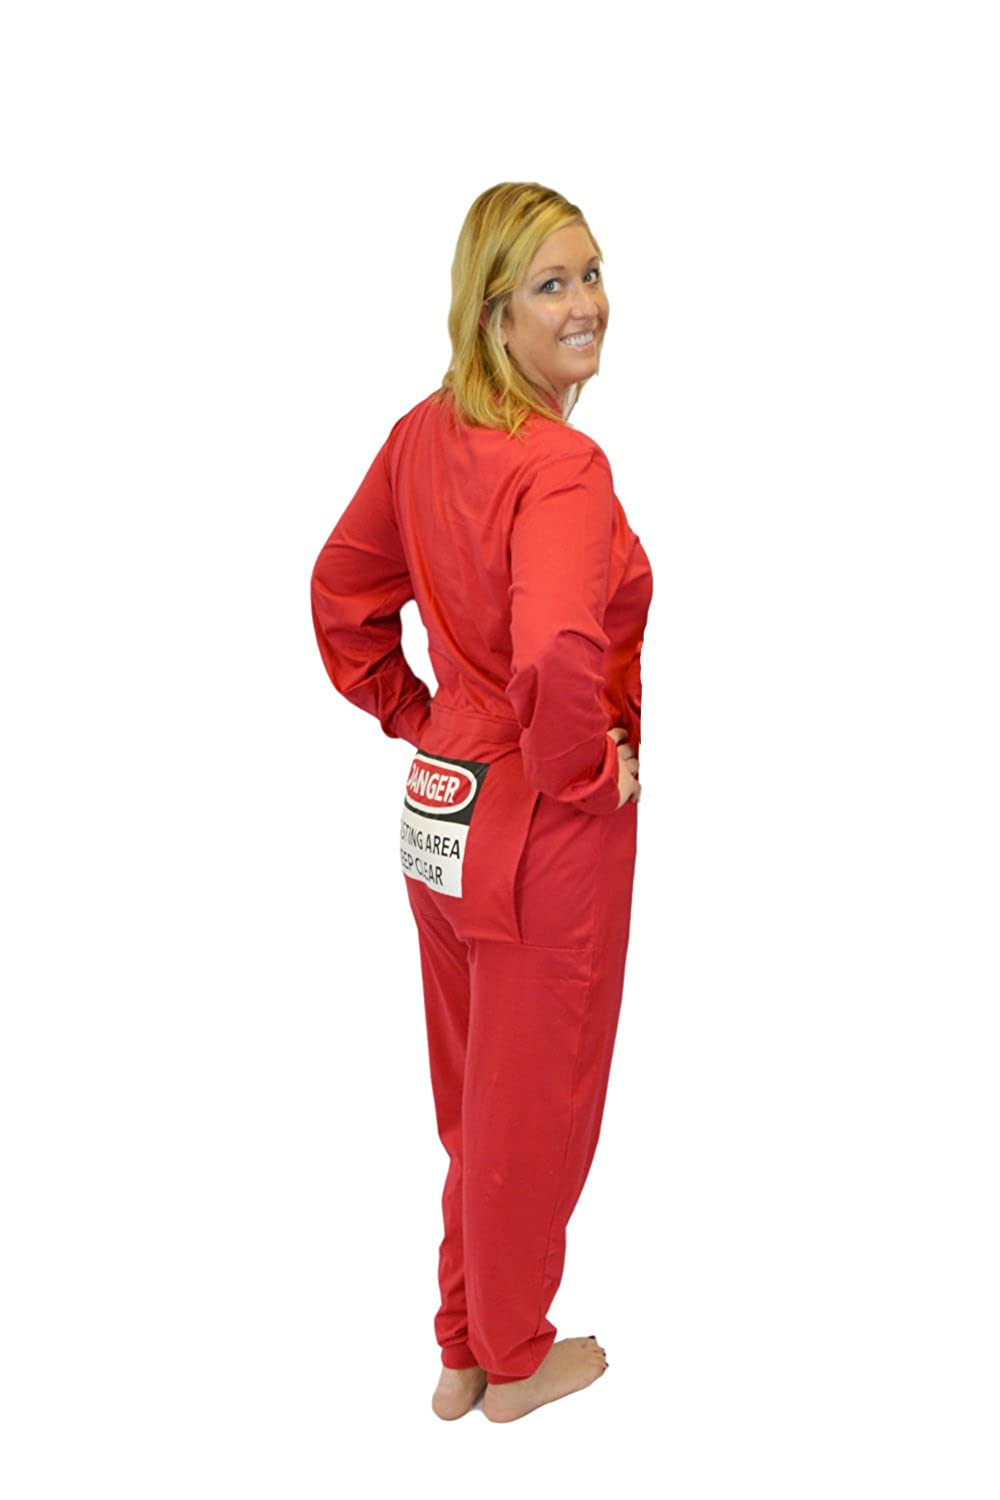 Red Union Suit Men & Women Onesie Pajamas with Funny Butt Flap Danger Blasting Area 354-BLST